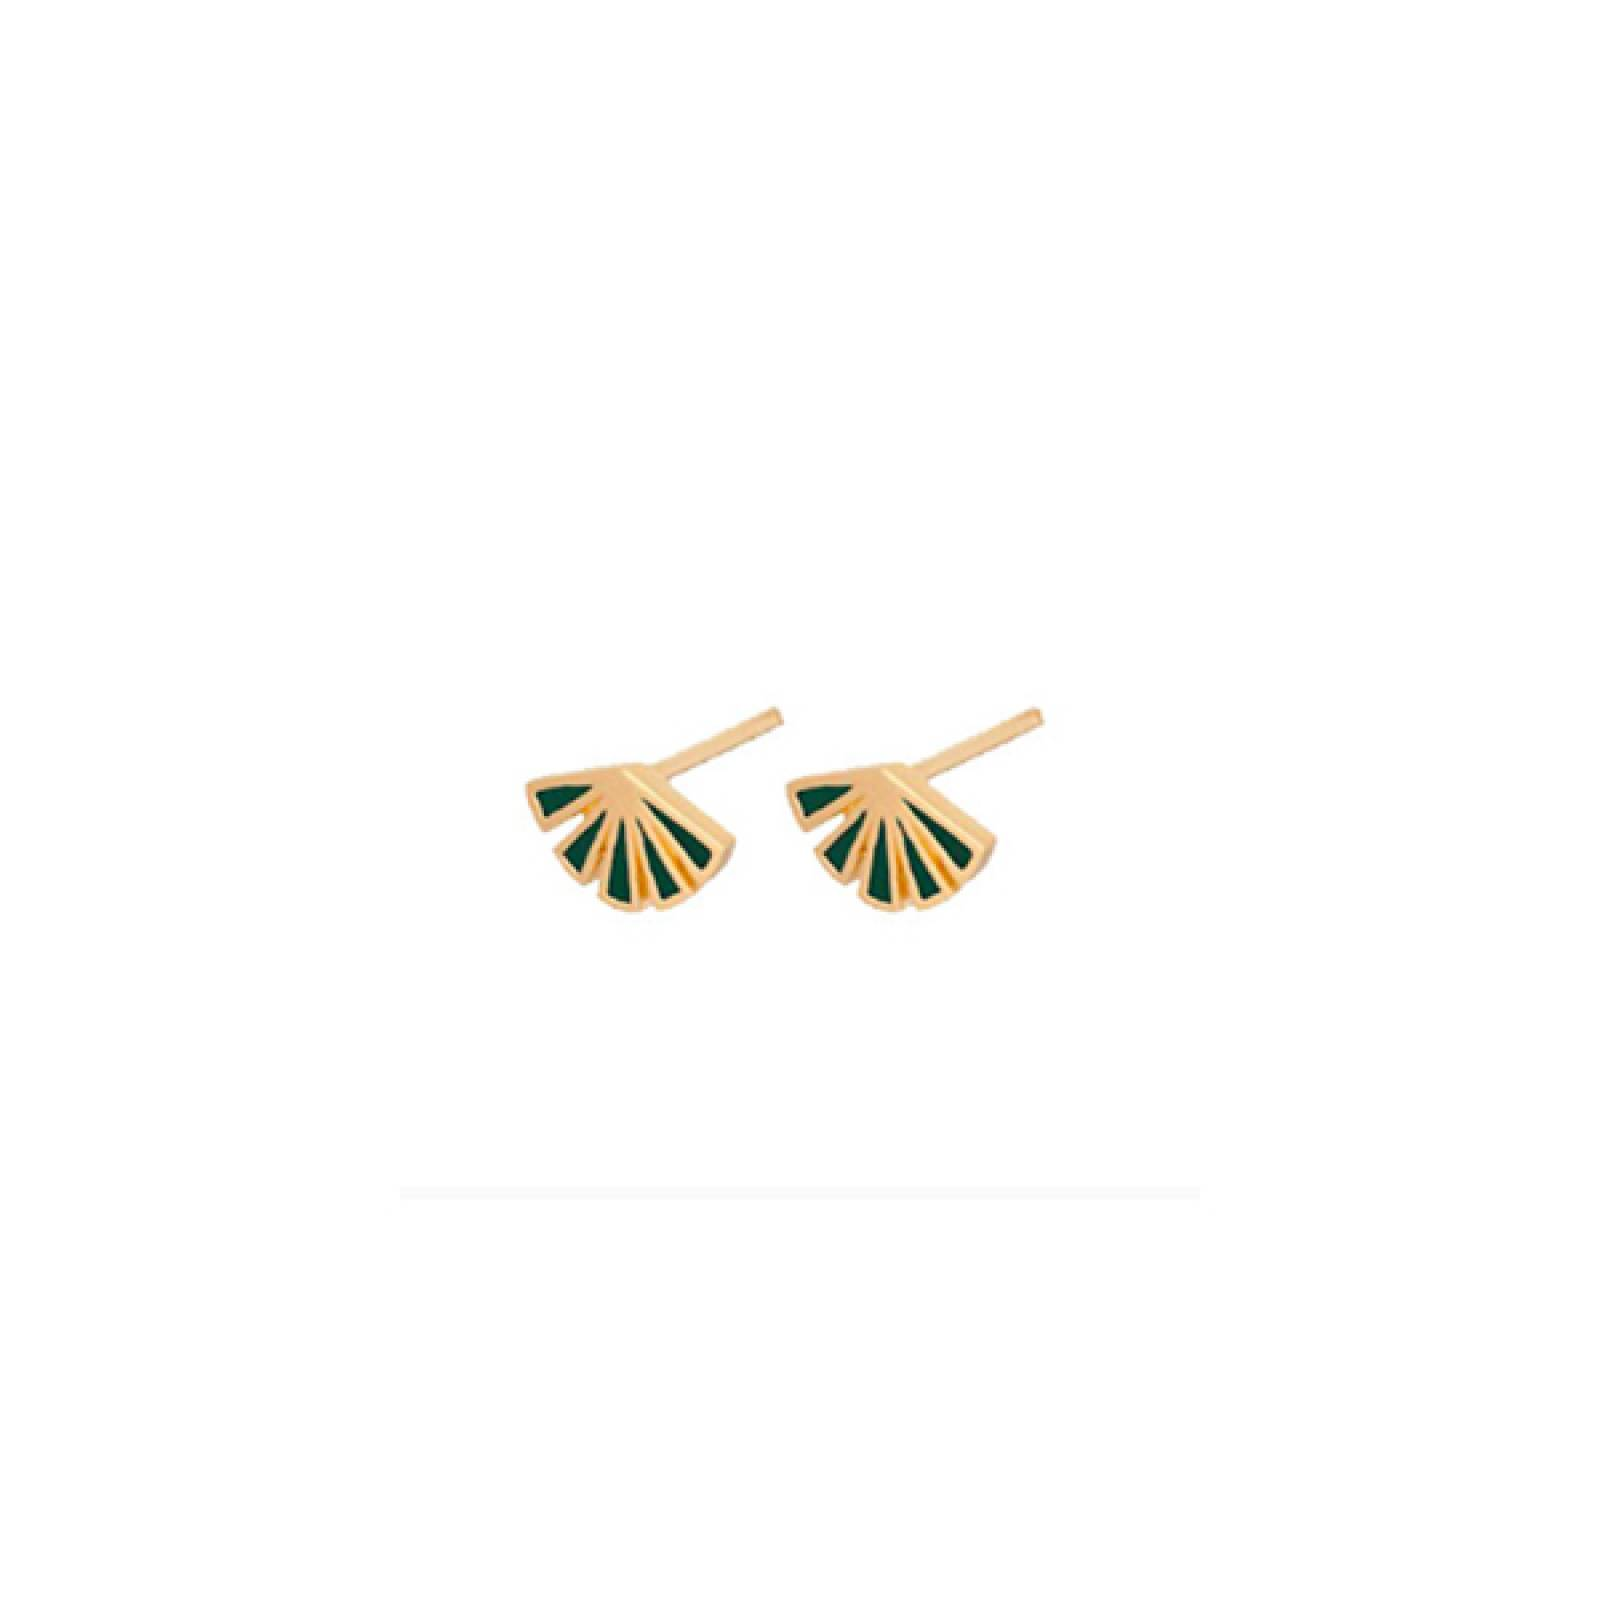 Green Flare Stud Earrings In Gold By Pernille Corydon thumbnails